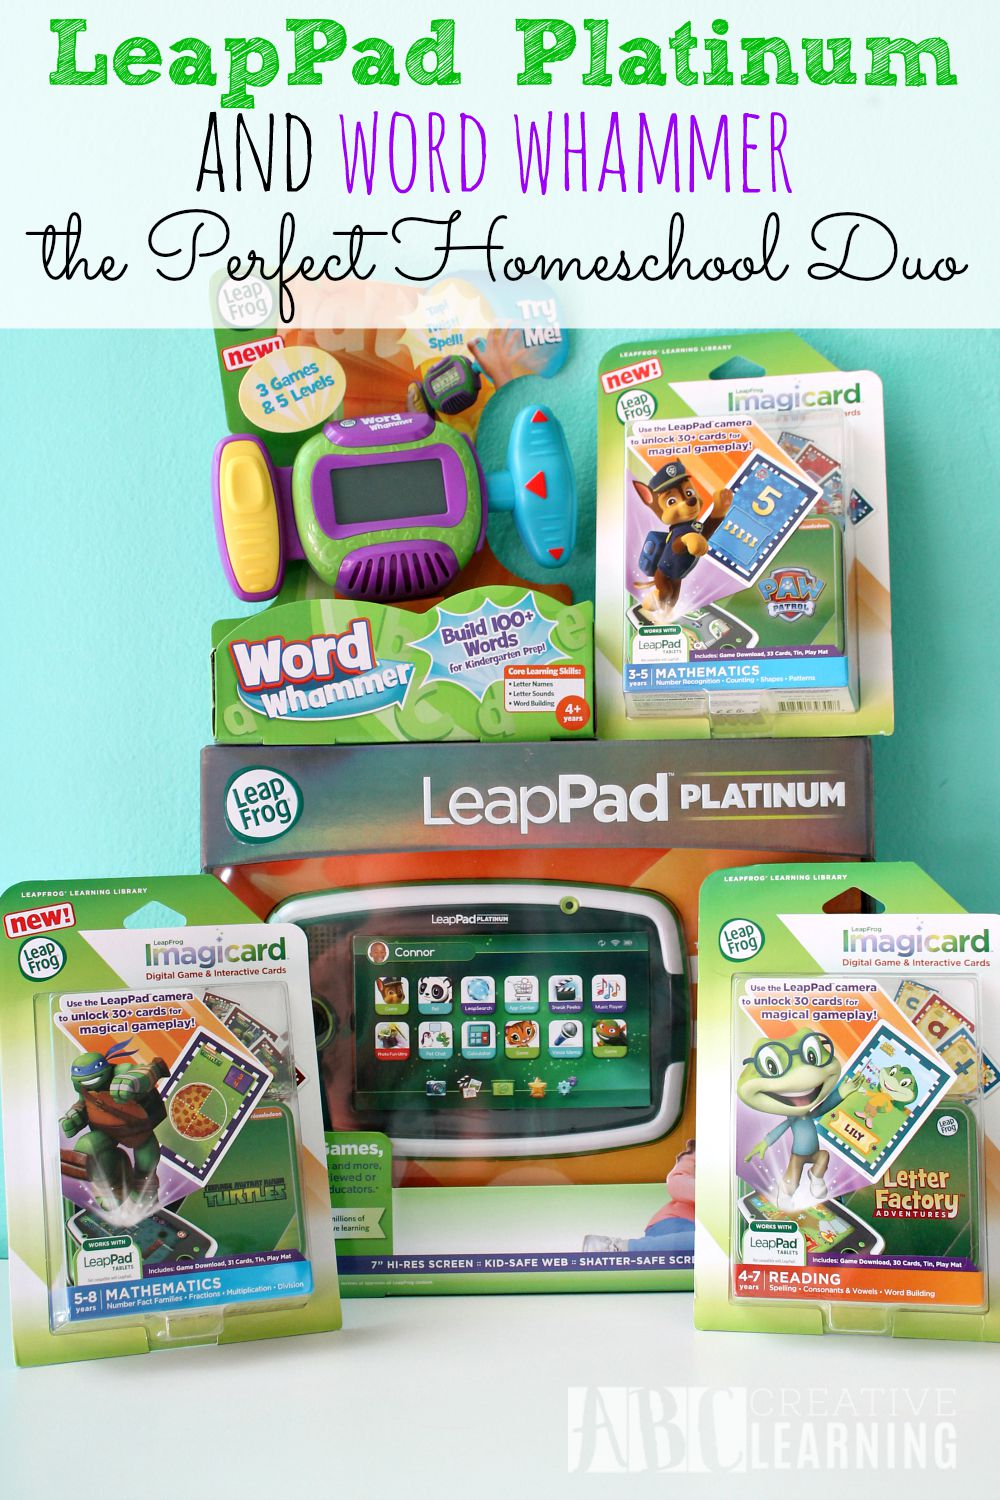 LeapPad Platinum & Word Whammer the Perfect Homeschool Duo